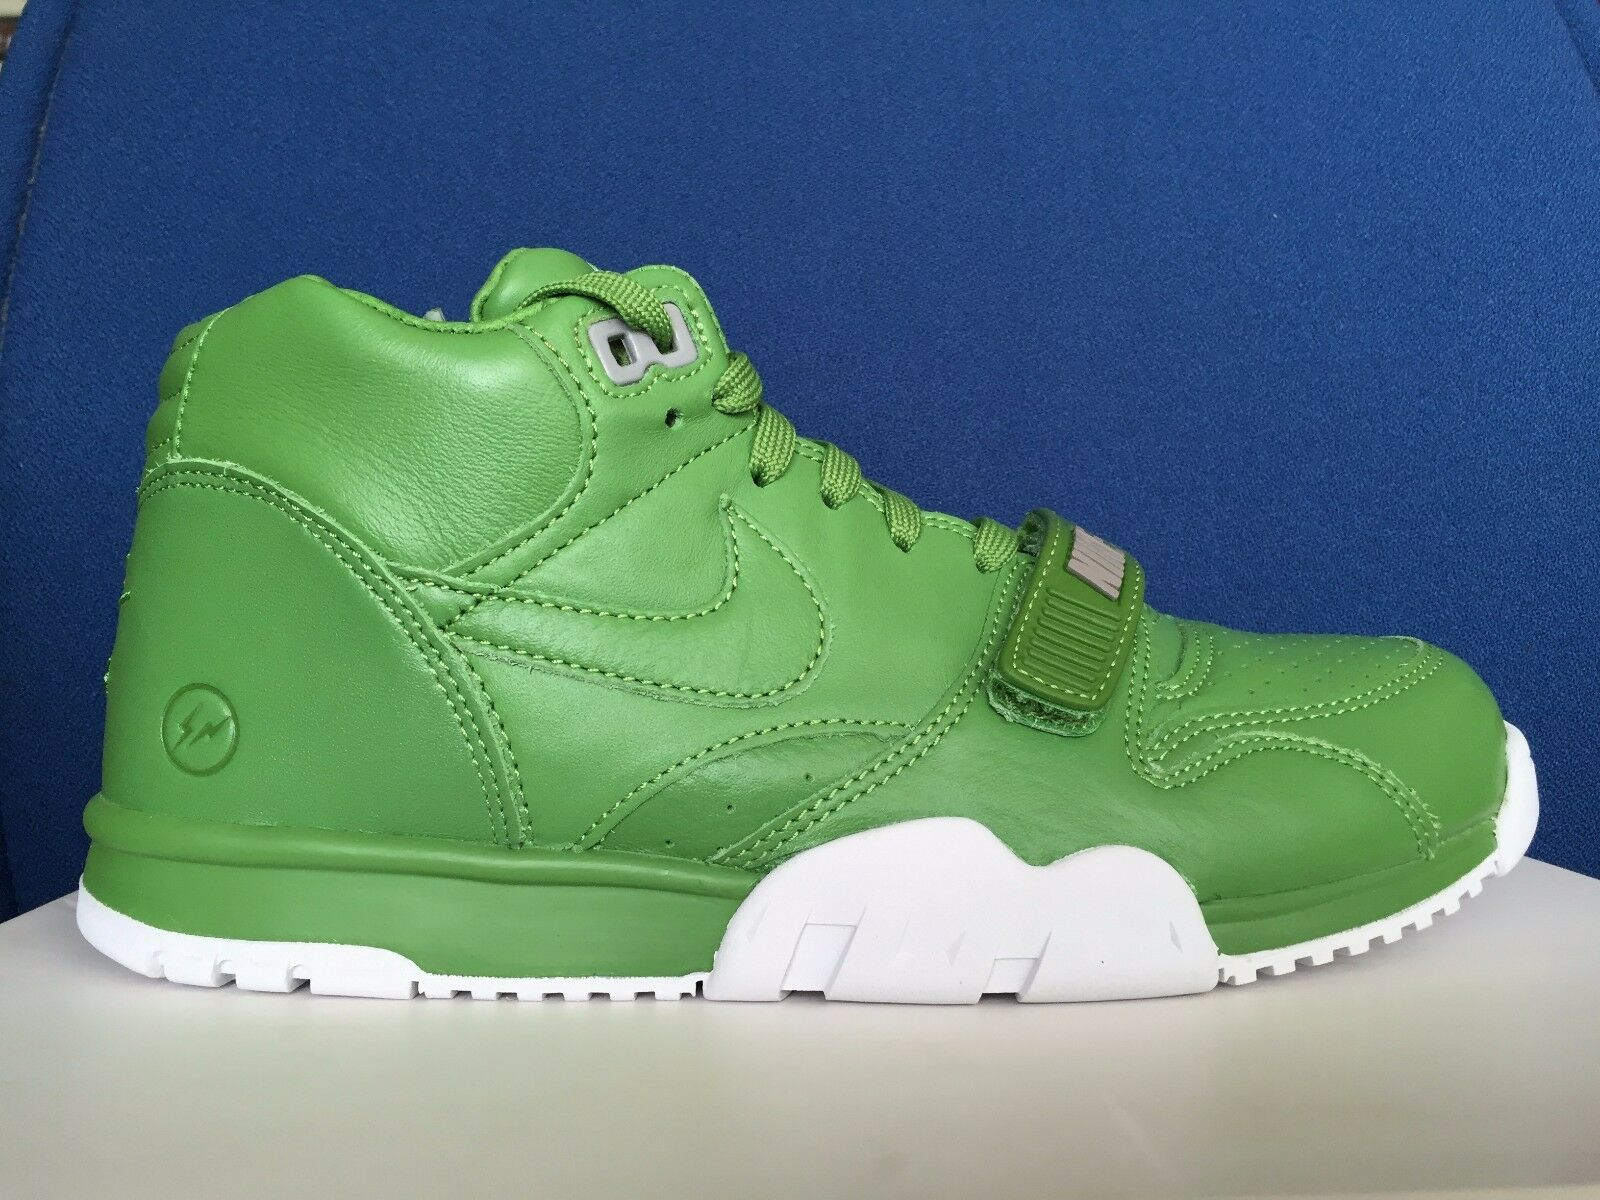 NIKE AIR TRAINER 1 MID SP FRAGMENT Price reduction Seasonal price cuts, discount benefits